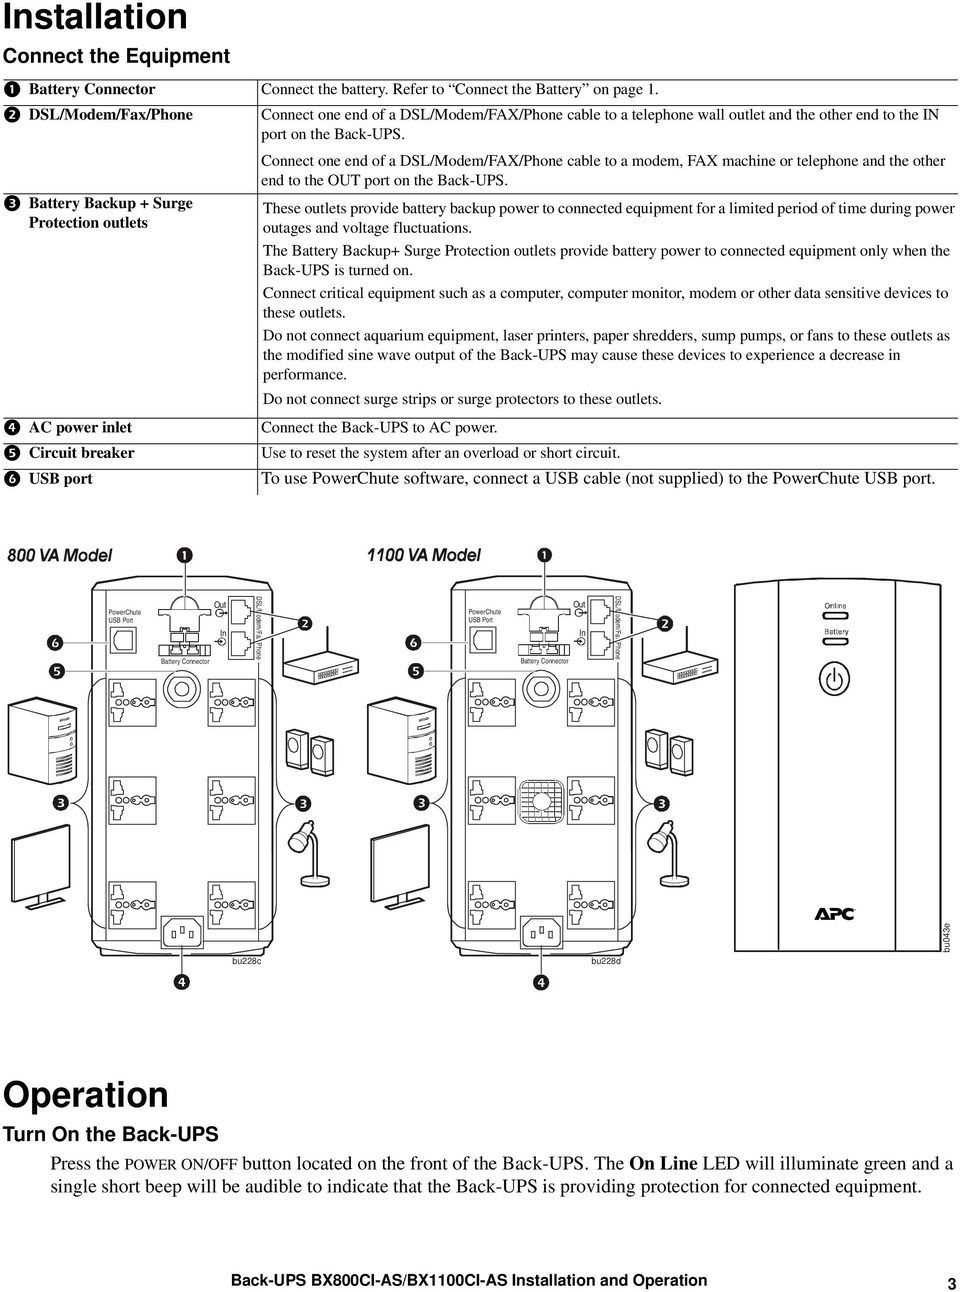 Installation And Operation Manual Back Ups Bx800ci As Bx1100ci Pdf Battery Backup Circuit Connect One End Of A Dsl Modem Fax Phone Cable To